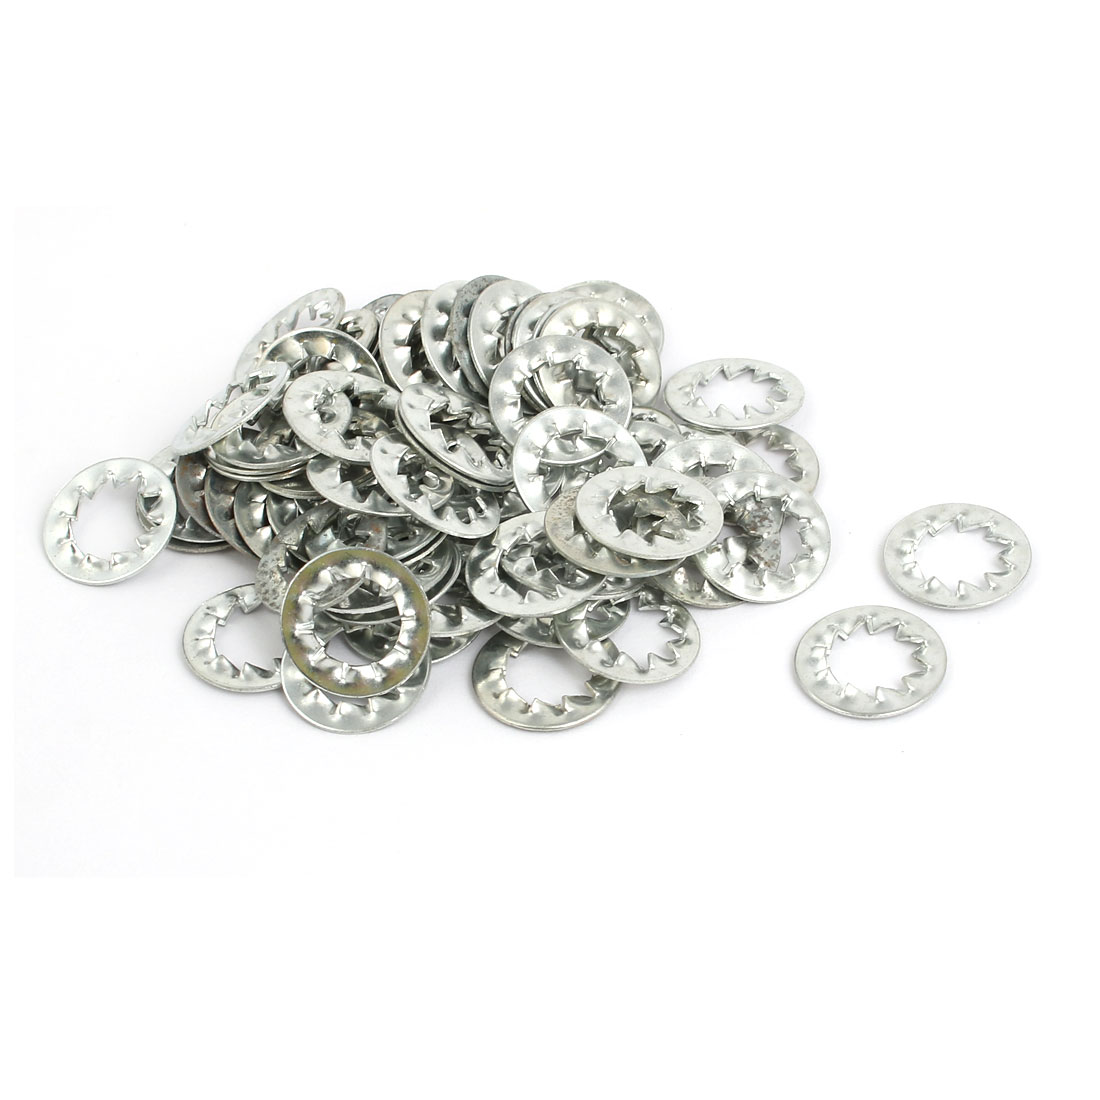 8mm Inner Dia Carbon Steel Zinc Plated Internal Serrated Lock Washer 120pcs - image 2 of 2